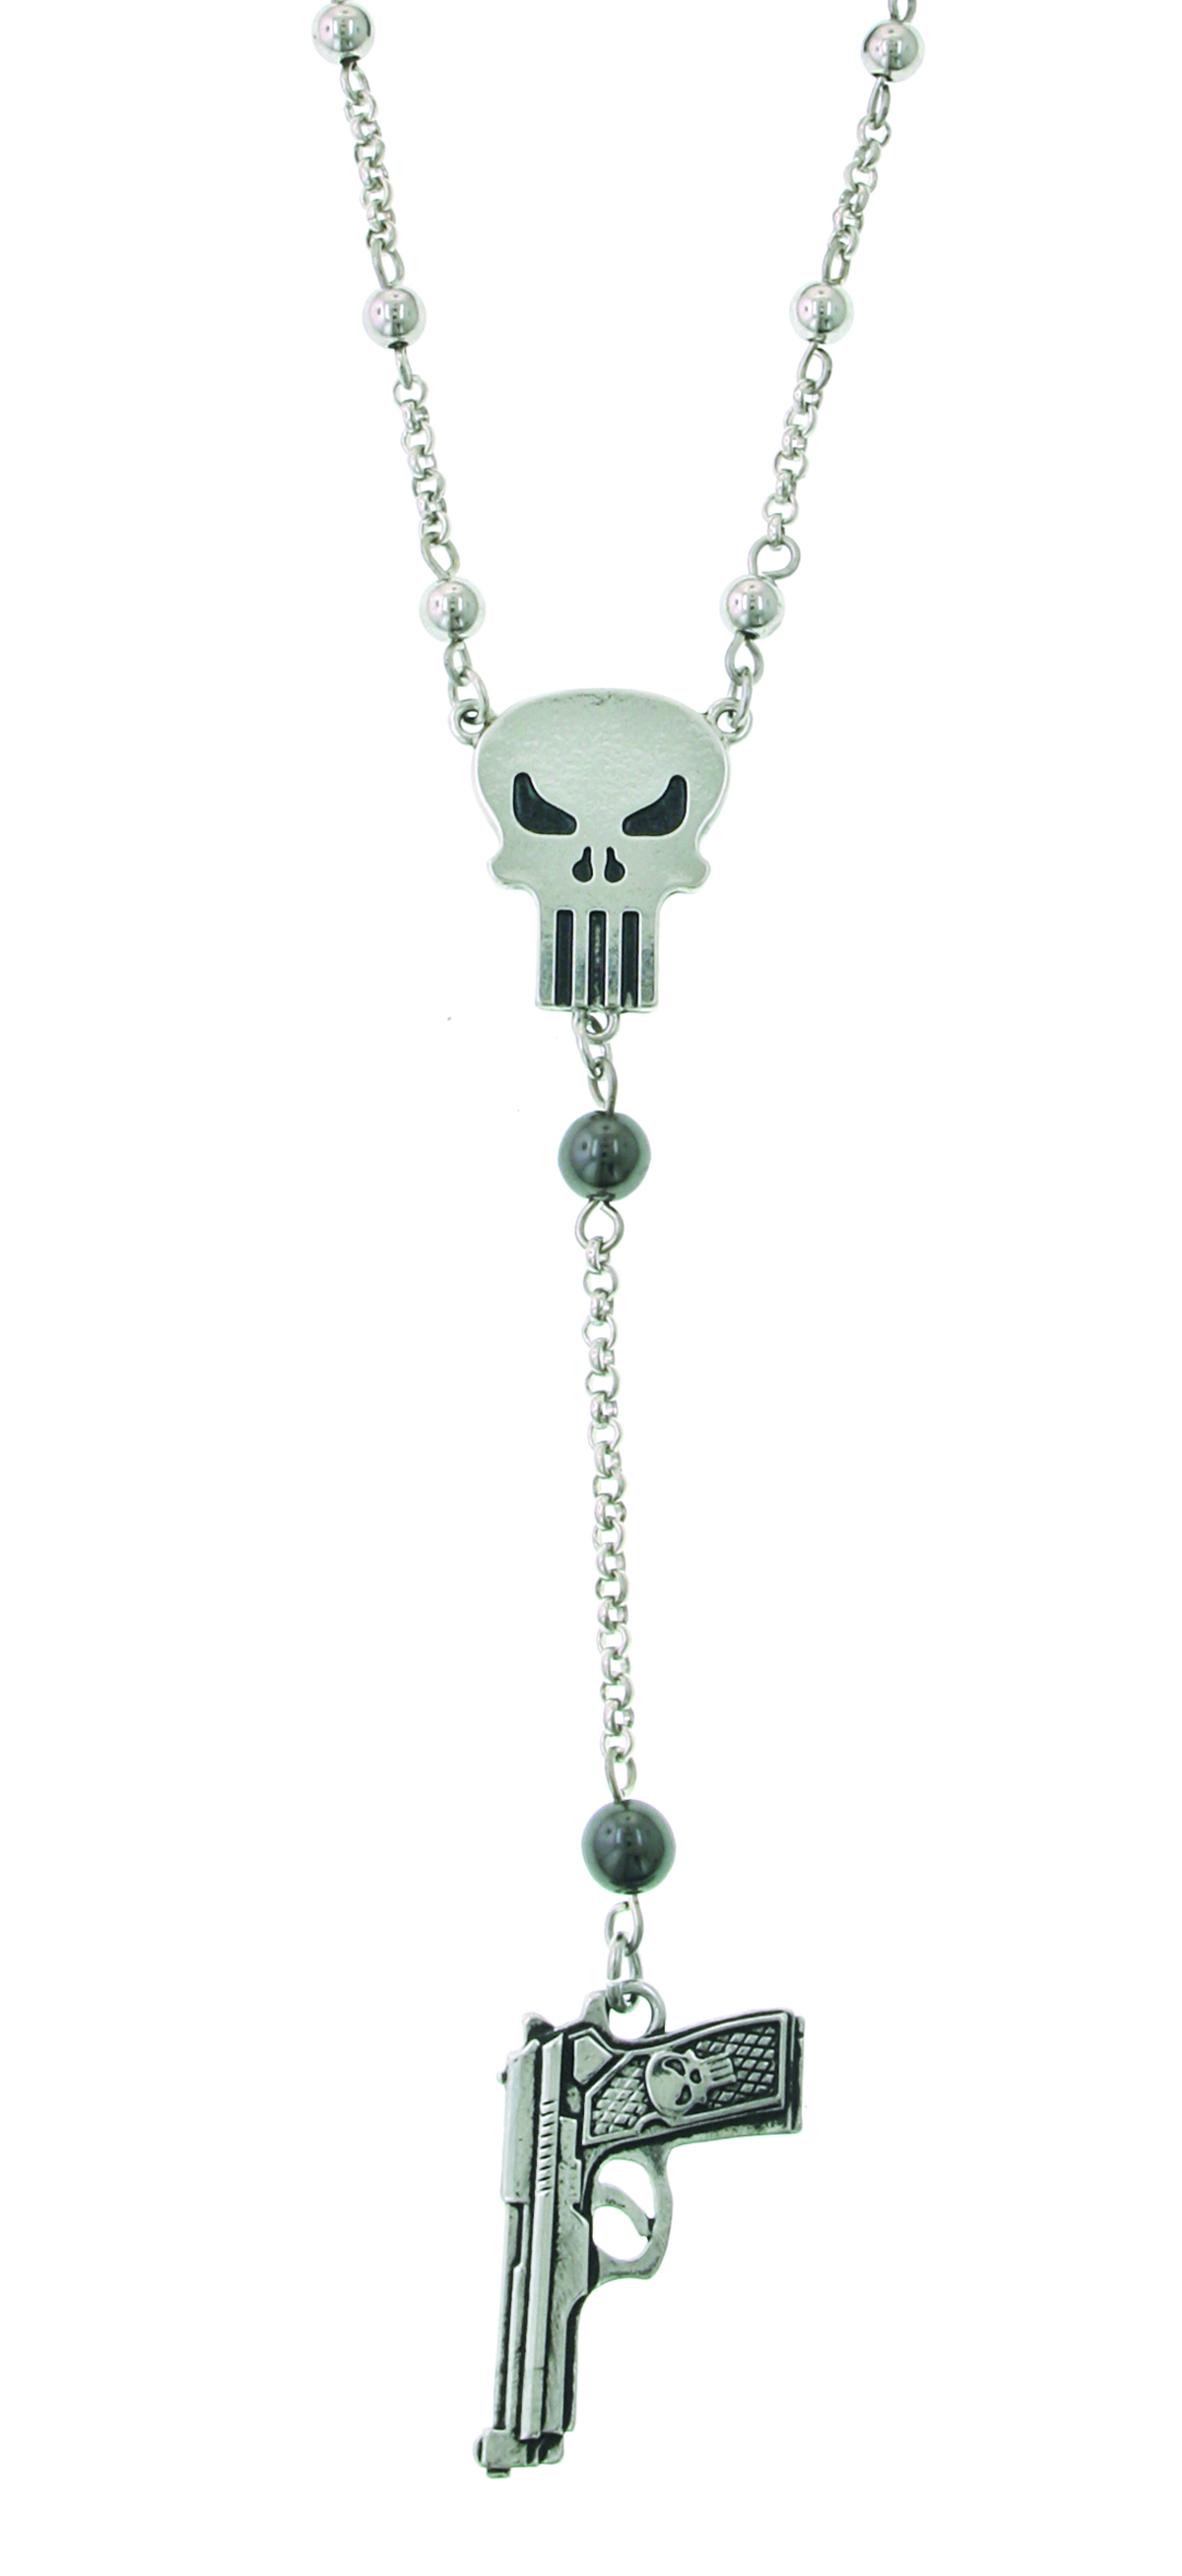 PUNISHER GUN CHARM NECKLACE